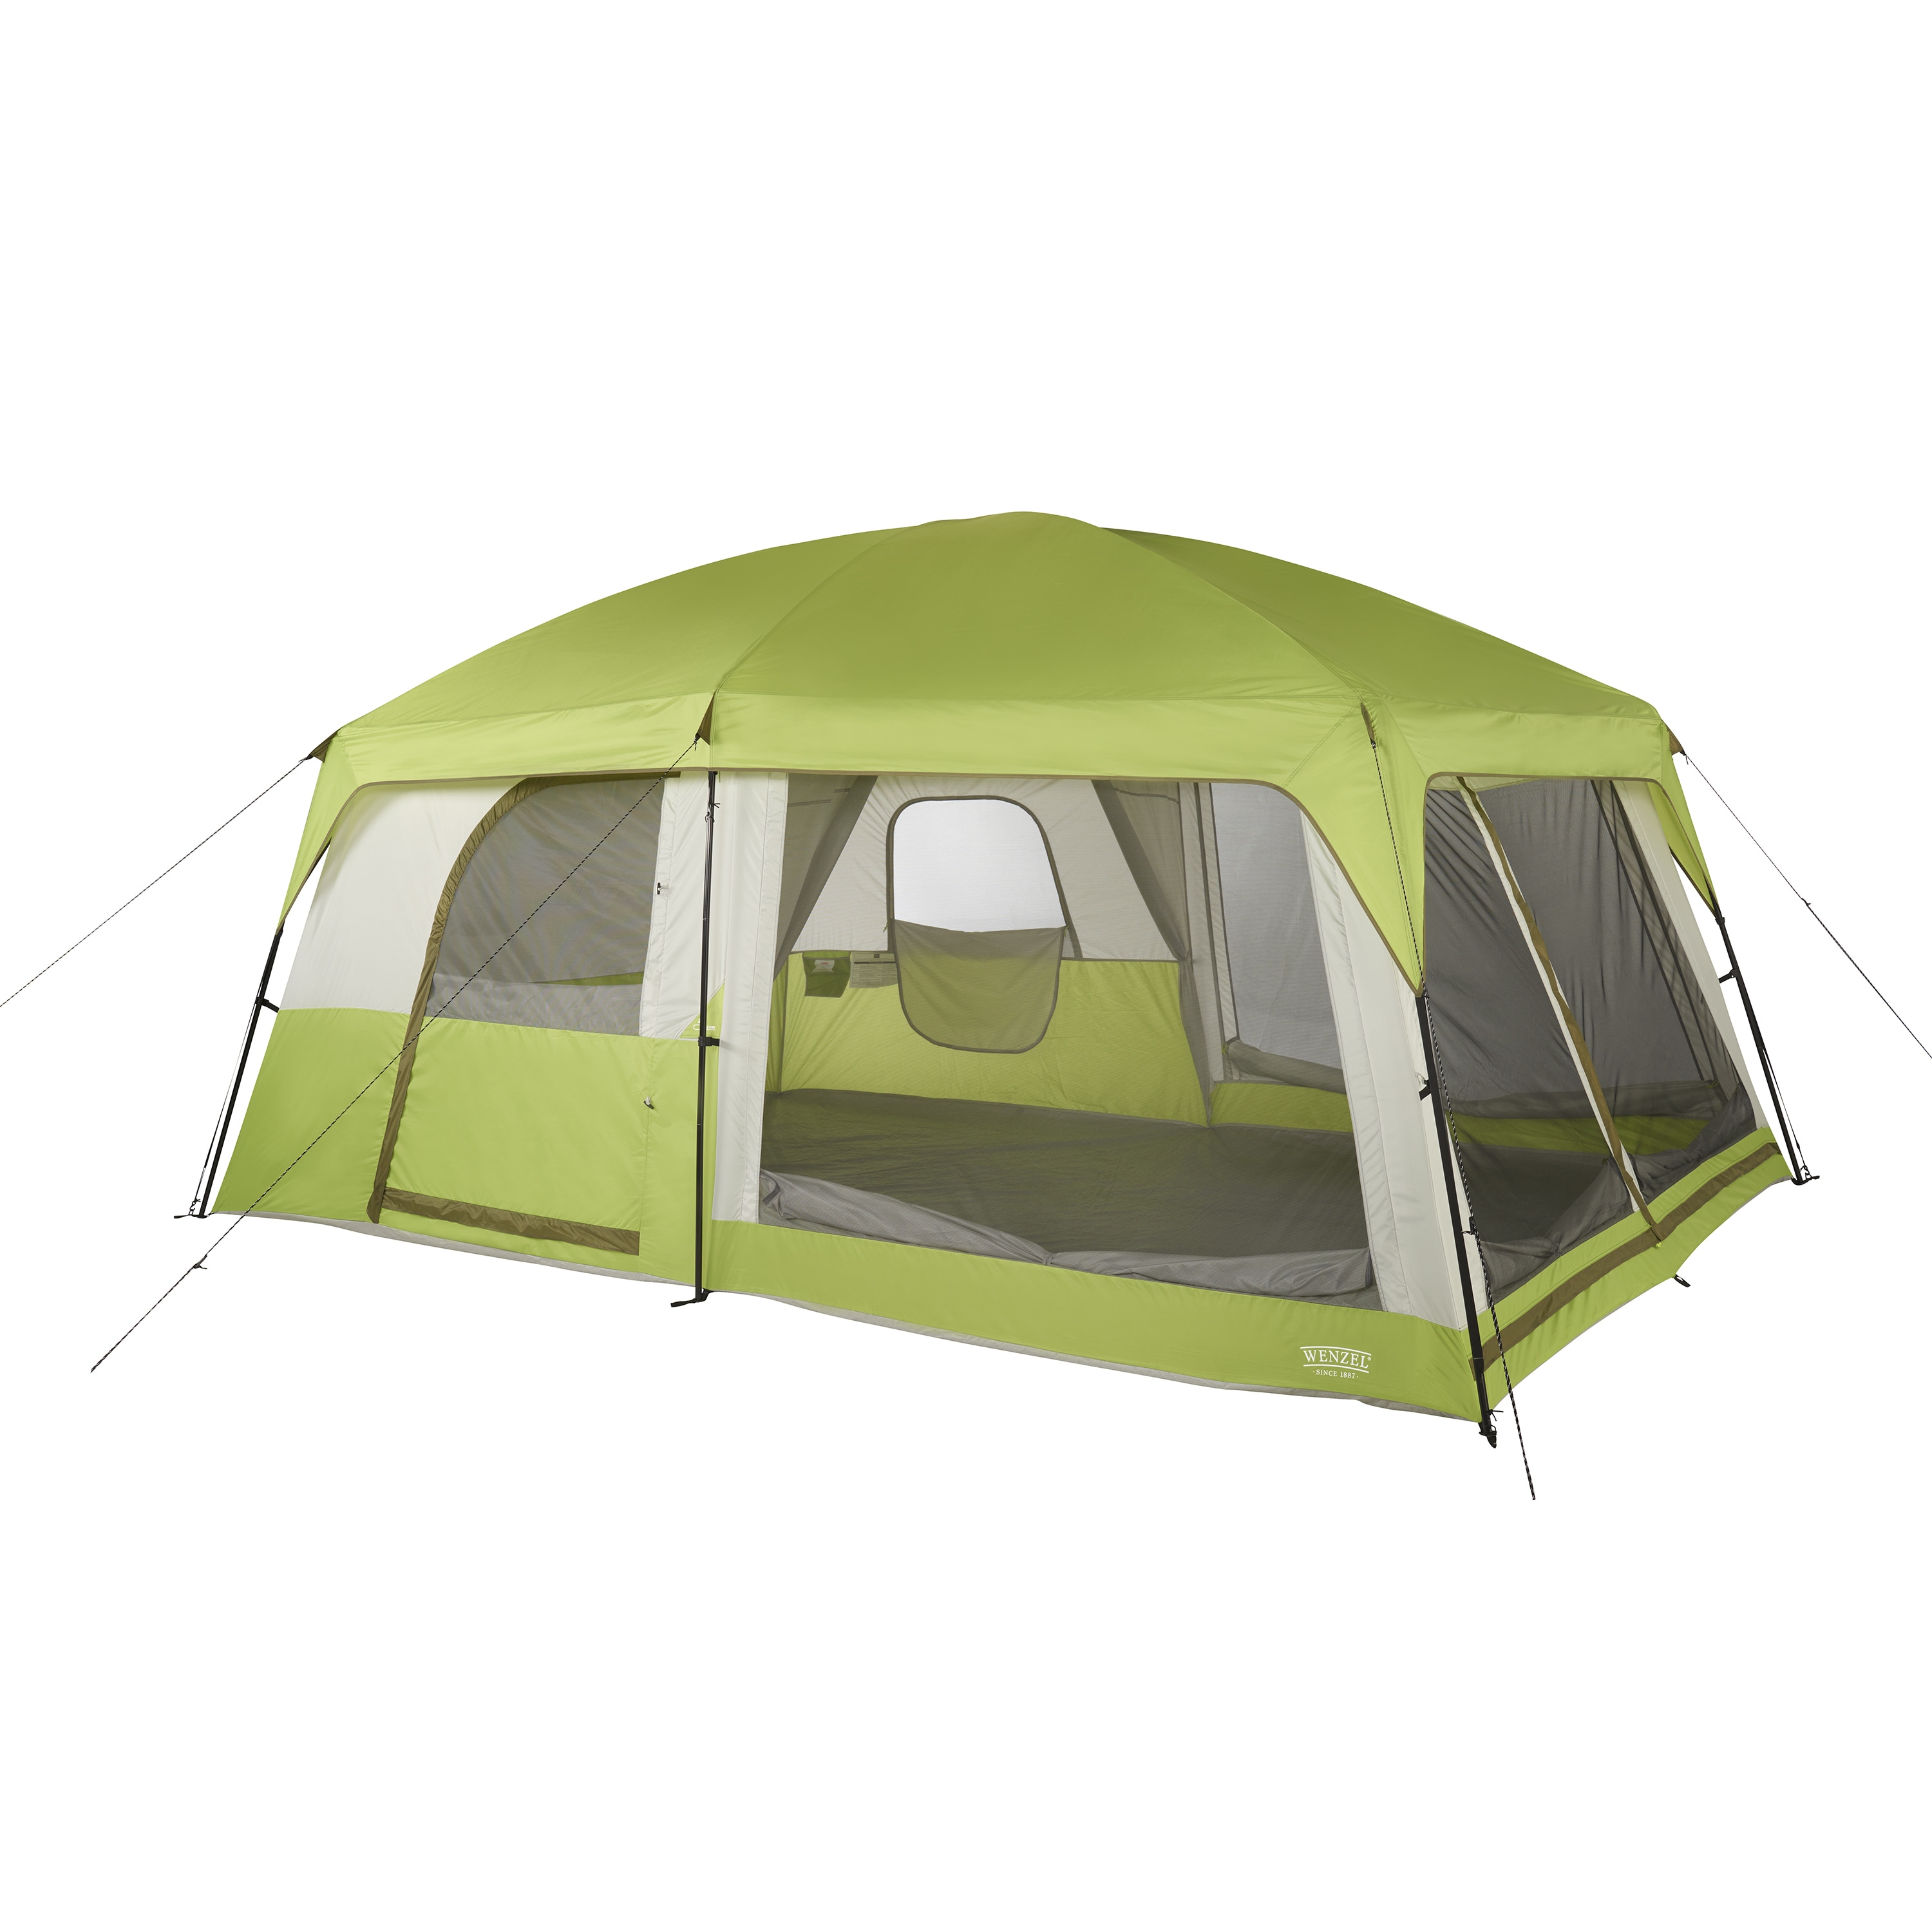 e0ad3eb8667 Shop Wenzel Eldorado Green 10-person Cabin Tent - On Sale - Free Shipping  Today - Overstock - 15033480